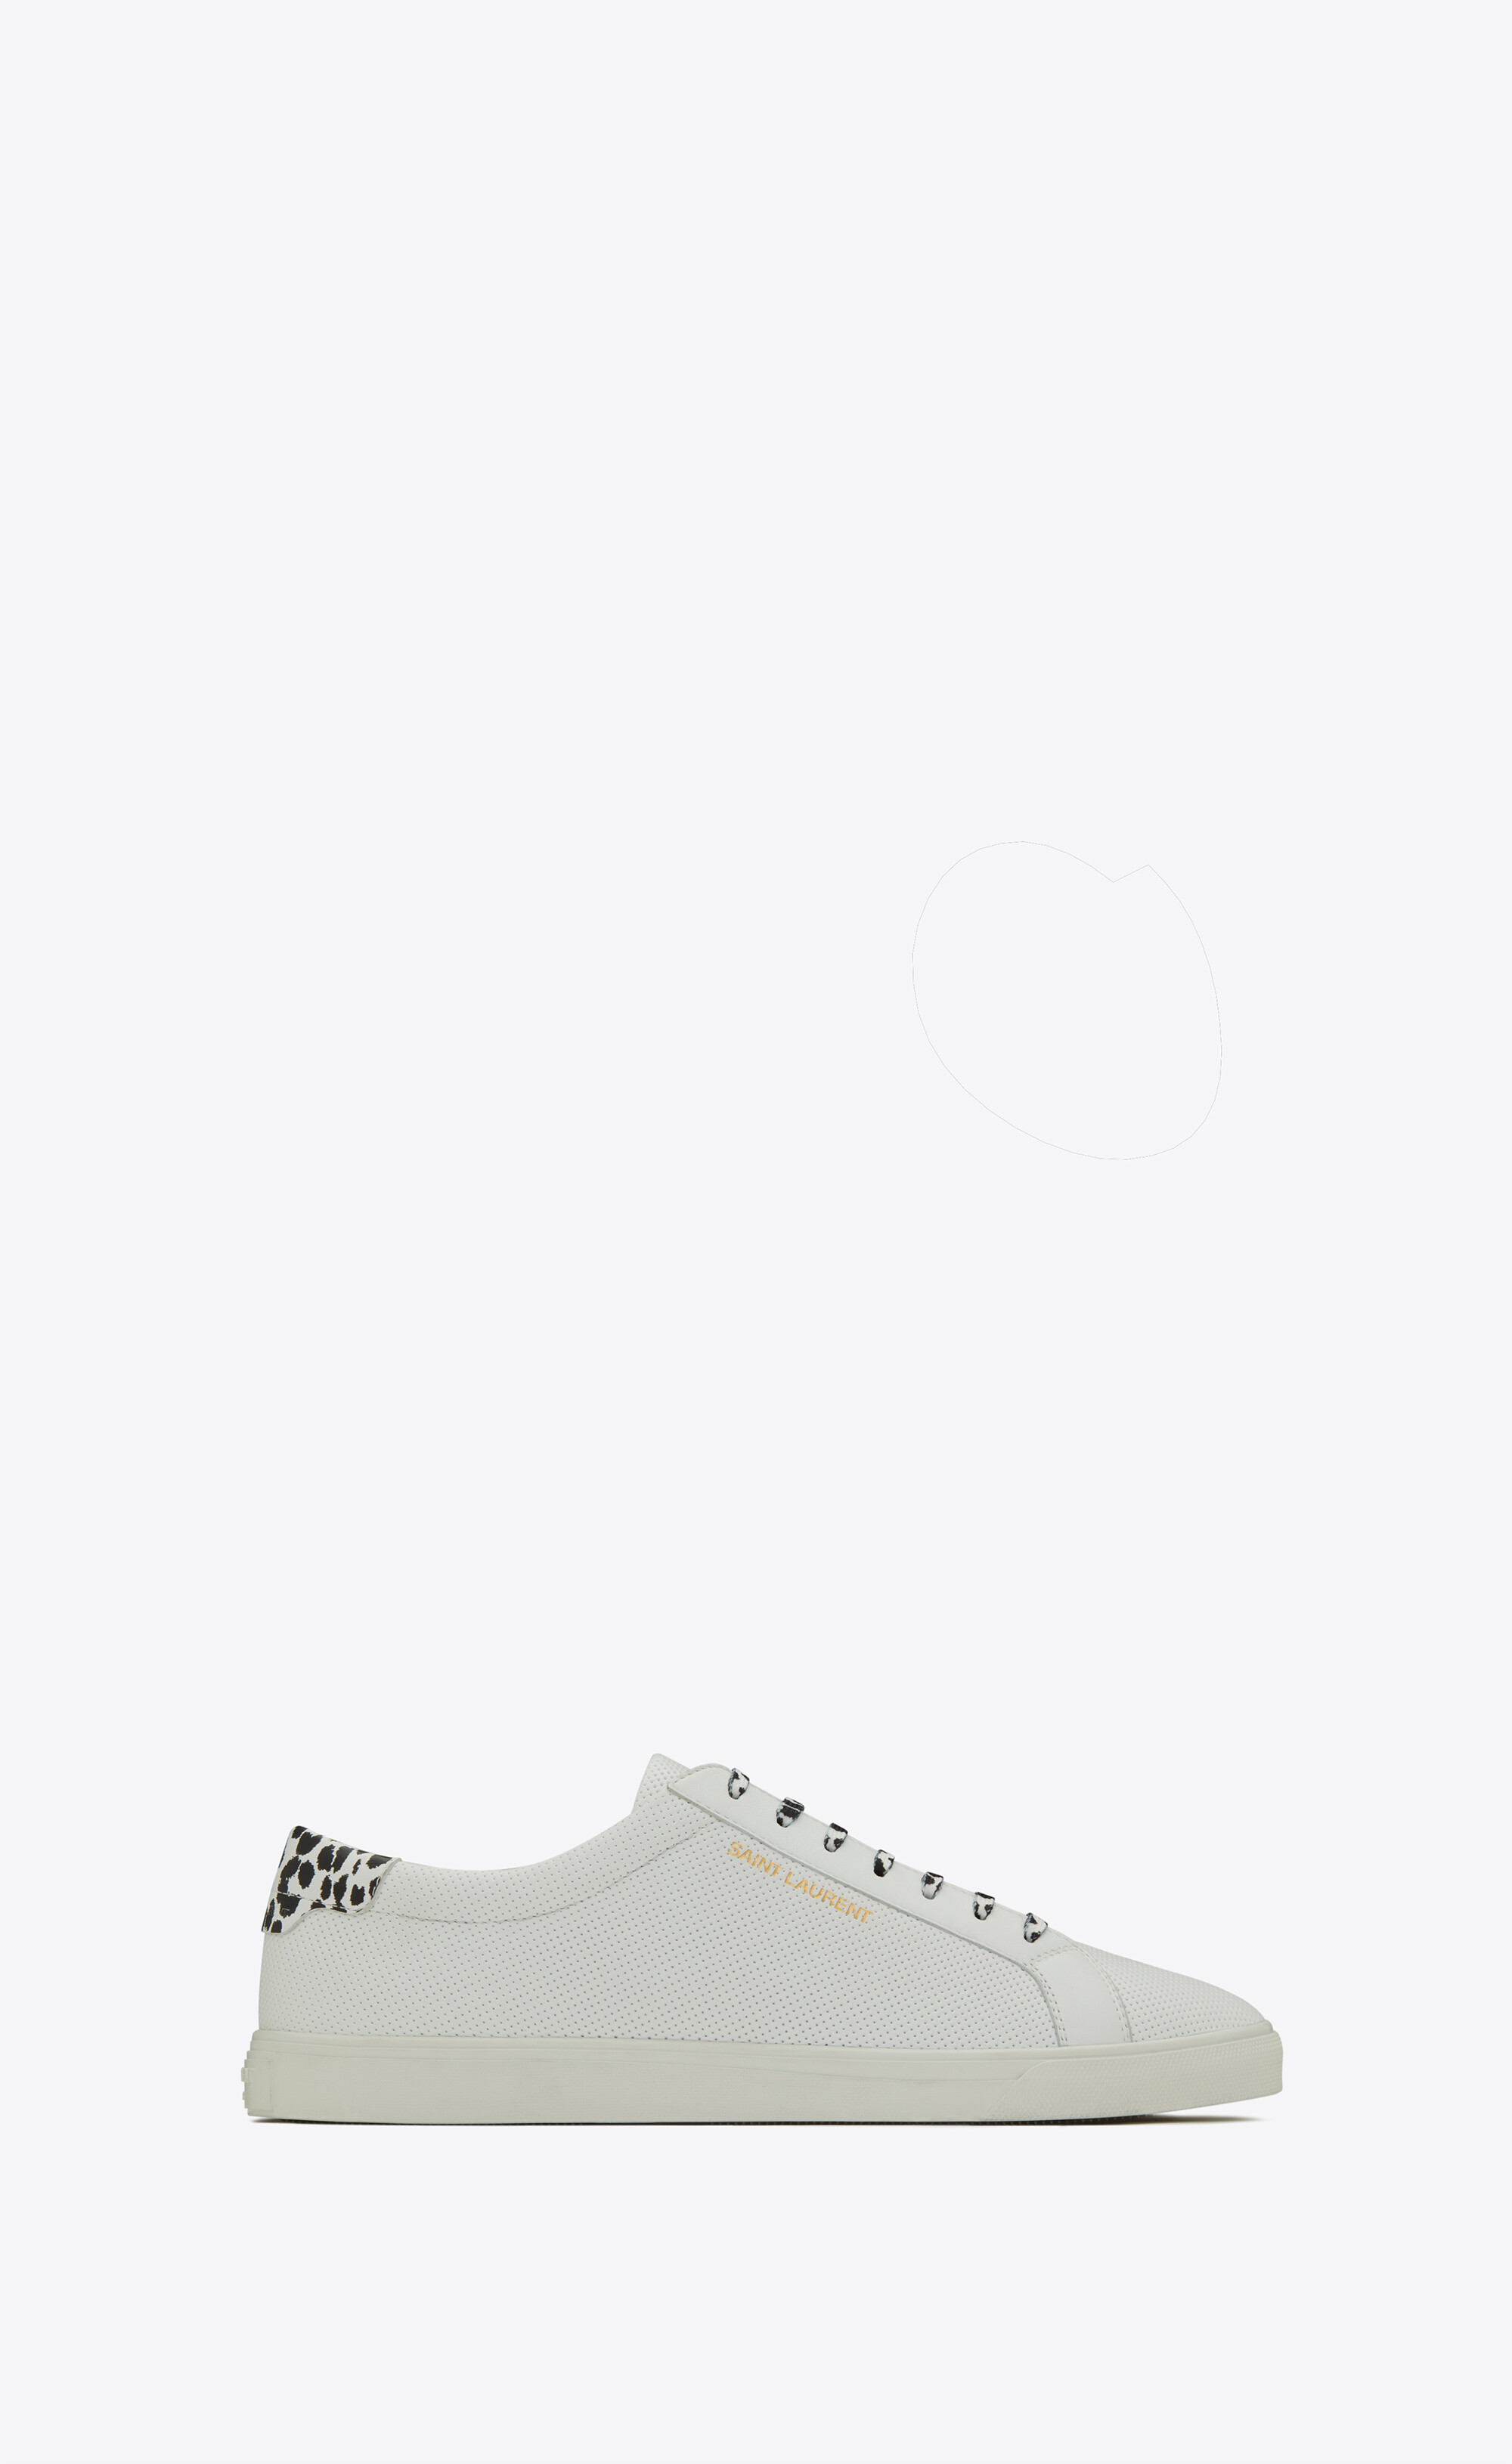 ANDY sneakers in perforated and babycat